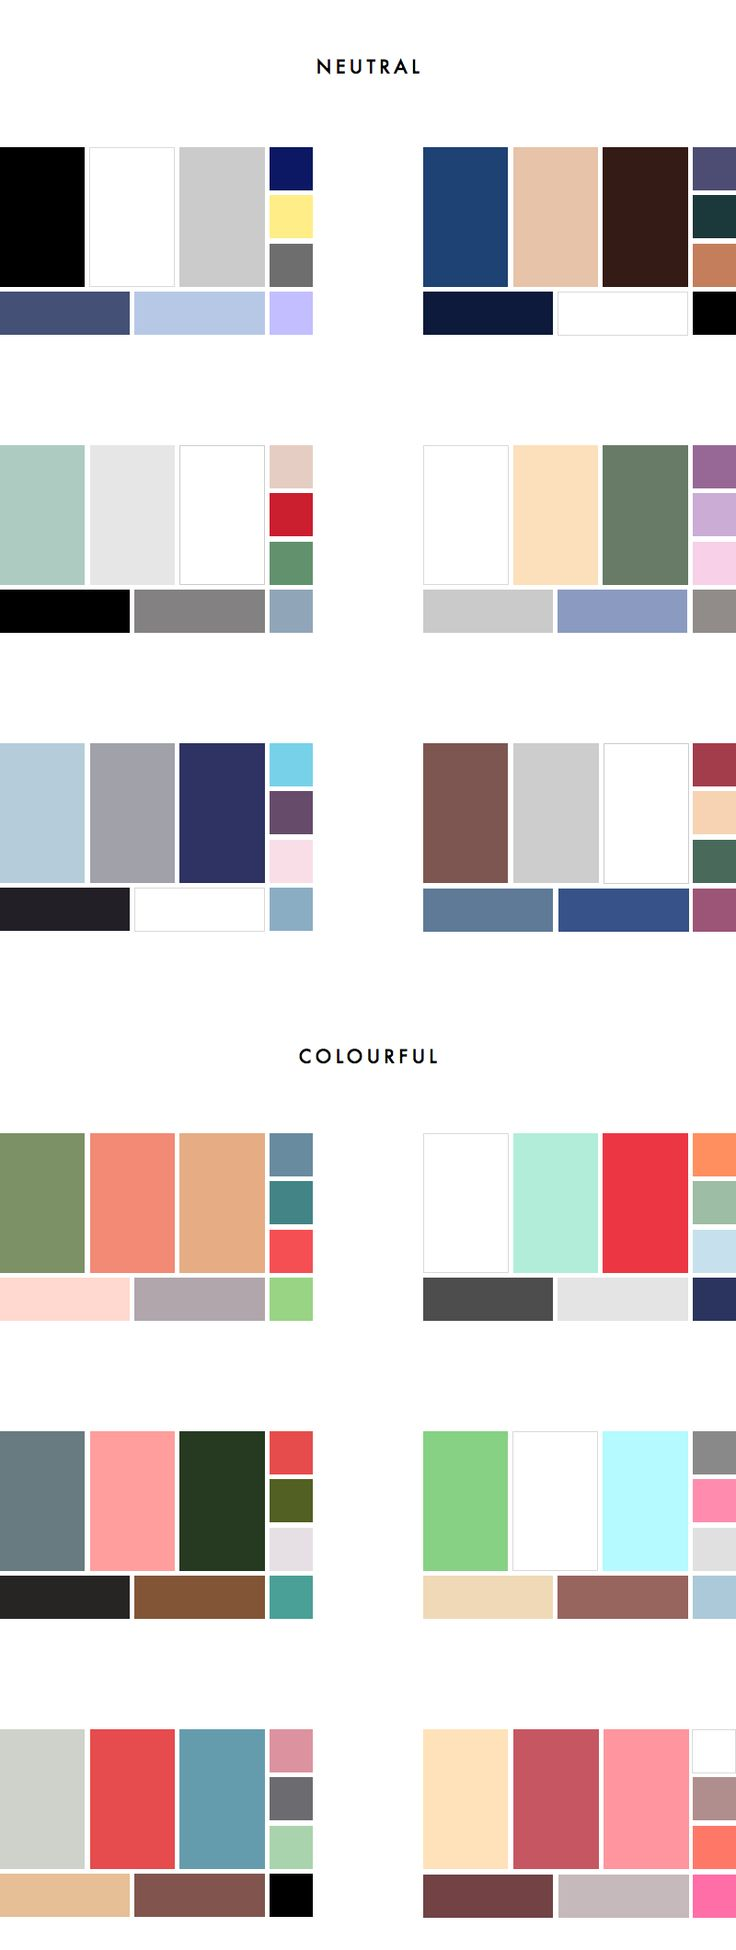 36 Colour Palettes for your Wardrobe Part II: Colourful vs Neutral